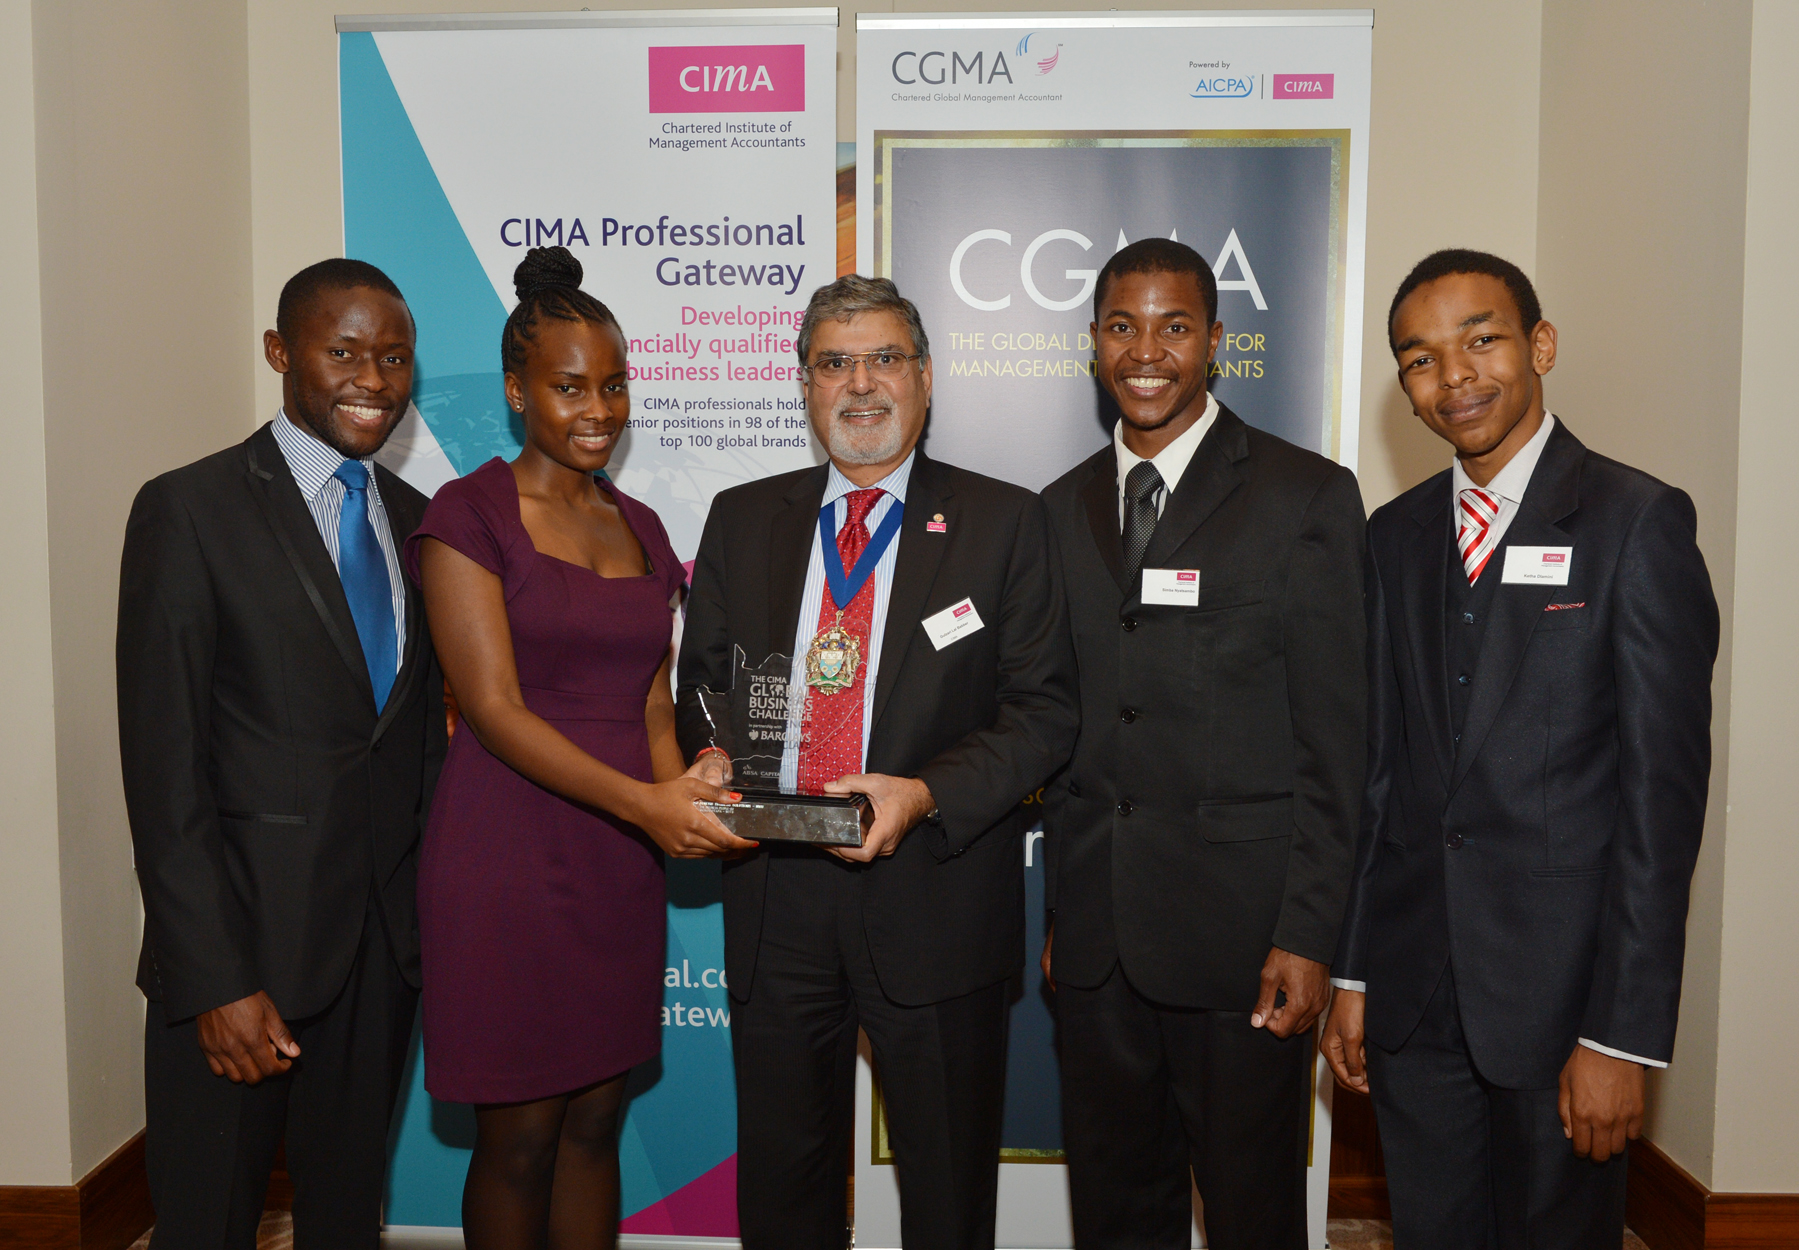 Witsies who were part of the winning team in the 2012 challenge. Photo Courtesy: CIMA